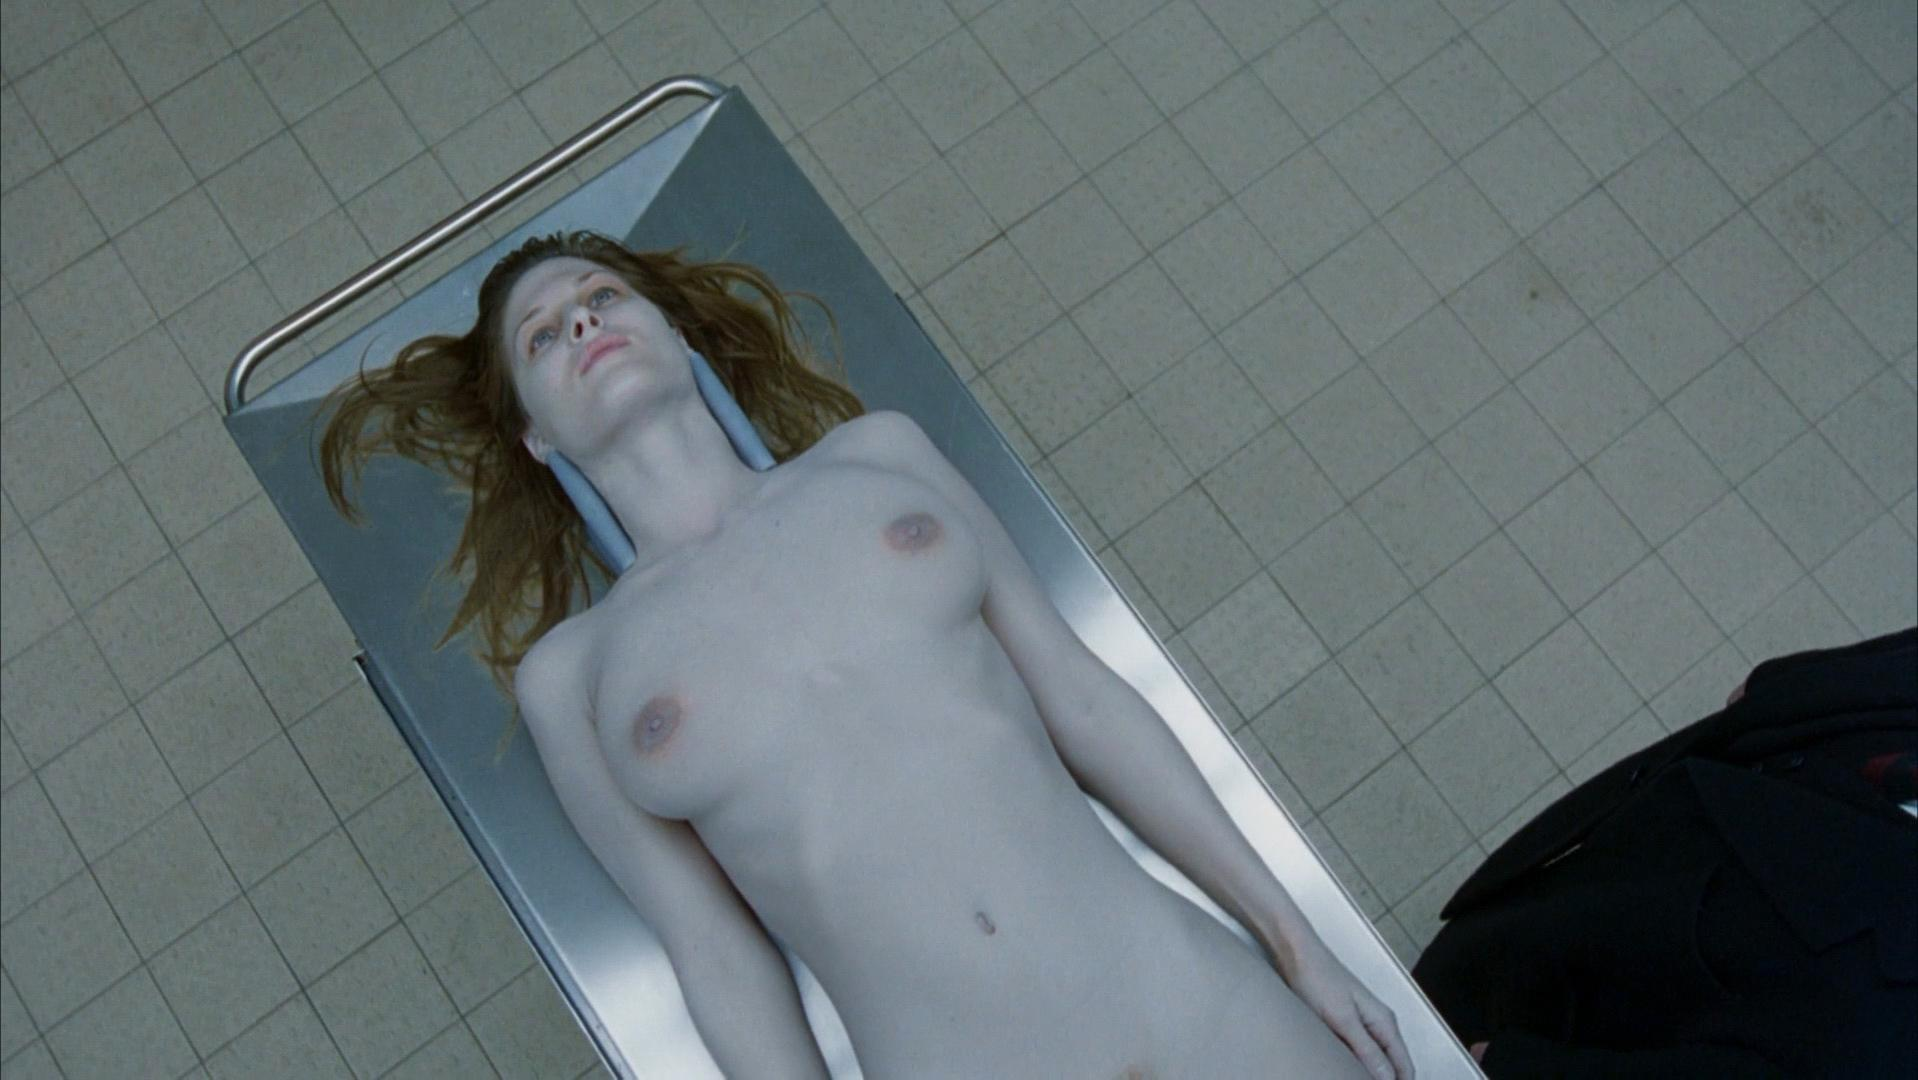 Julienne Davis nude, Abigail Good nude - Eyes Wide Shut (1999)